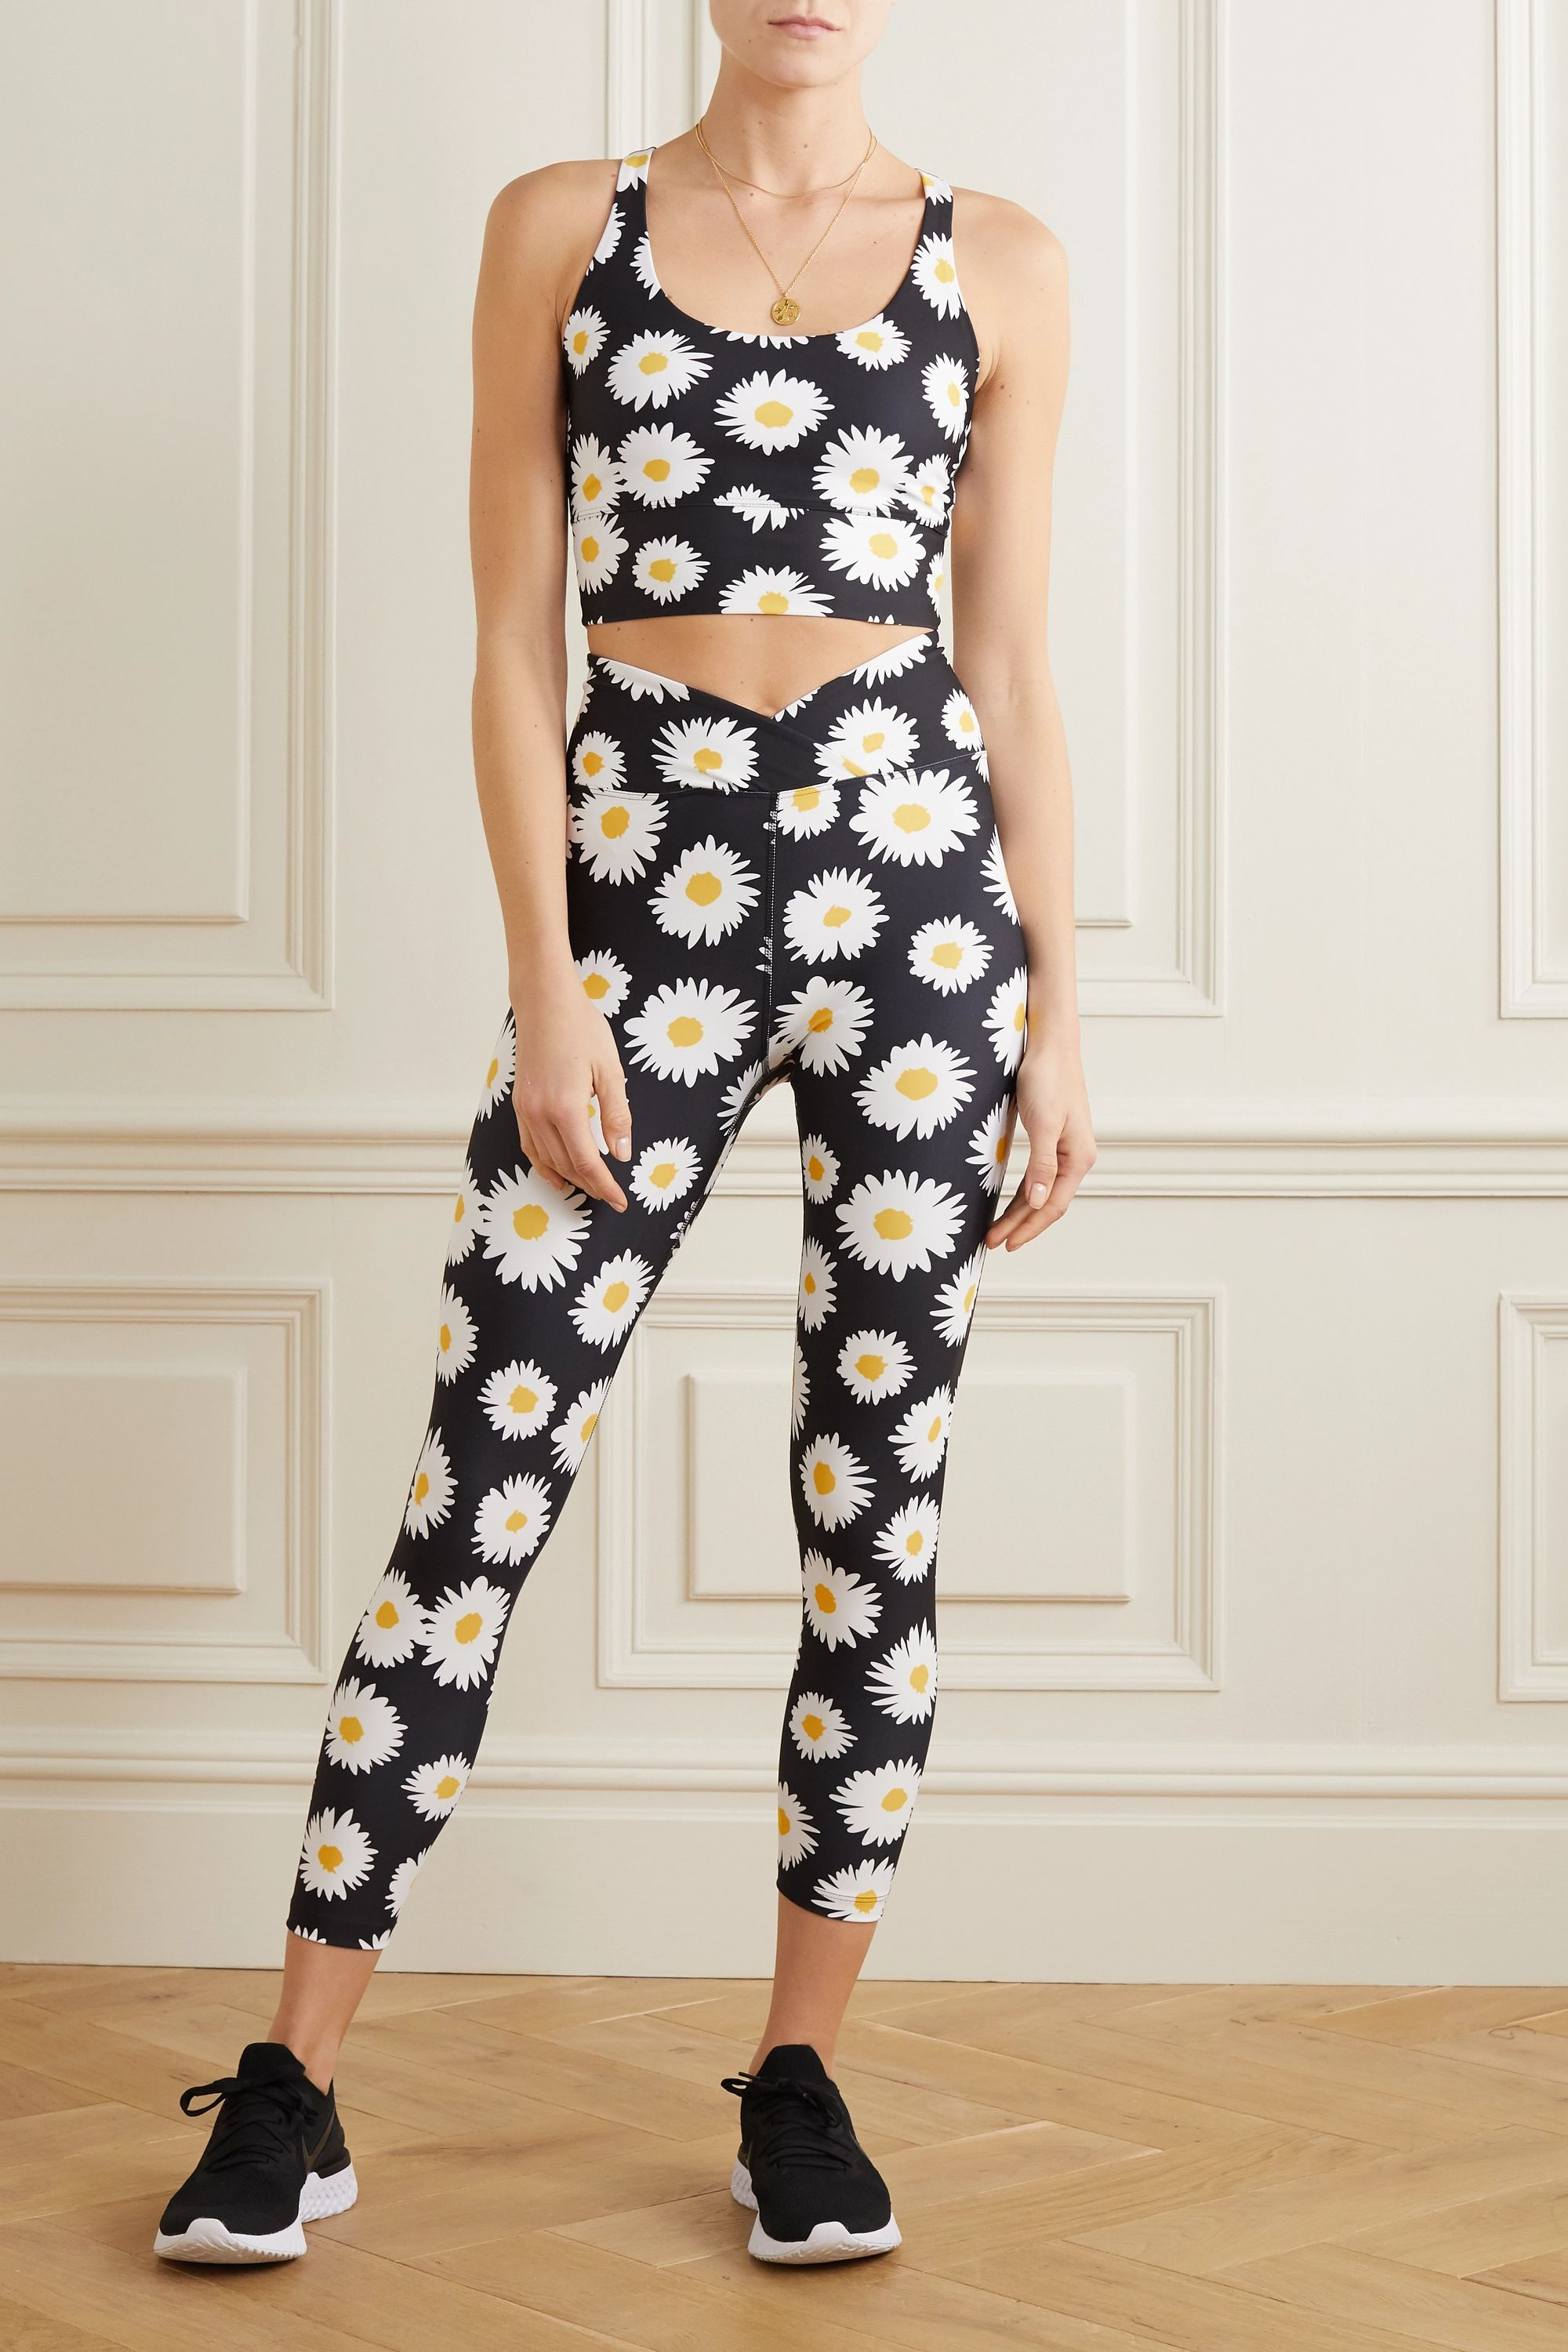 Year of Ours Daisy floral-print stretch sports bra